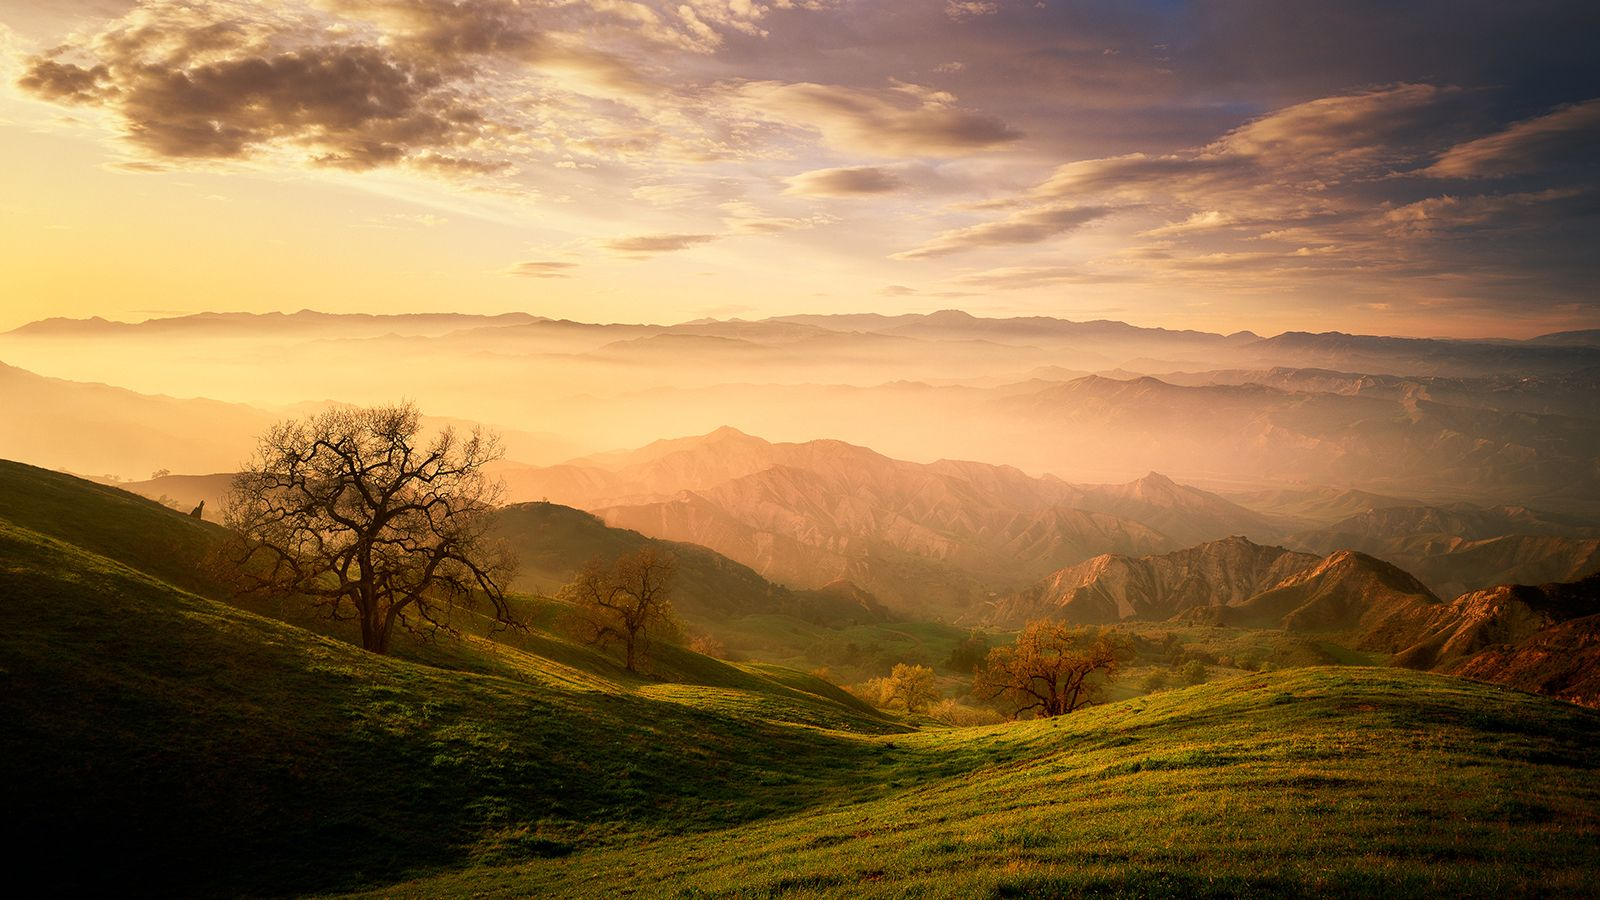 Landscape Photography with Marc Muench   Landscape photography and     Landscape Photography with Marc Muench   CreativeLive